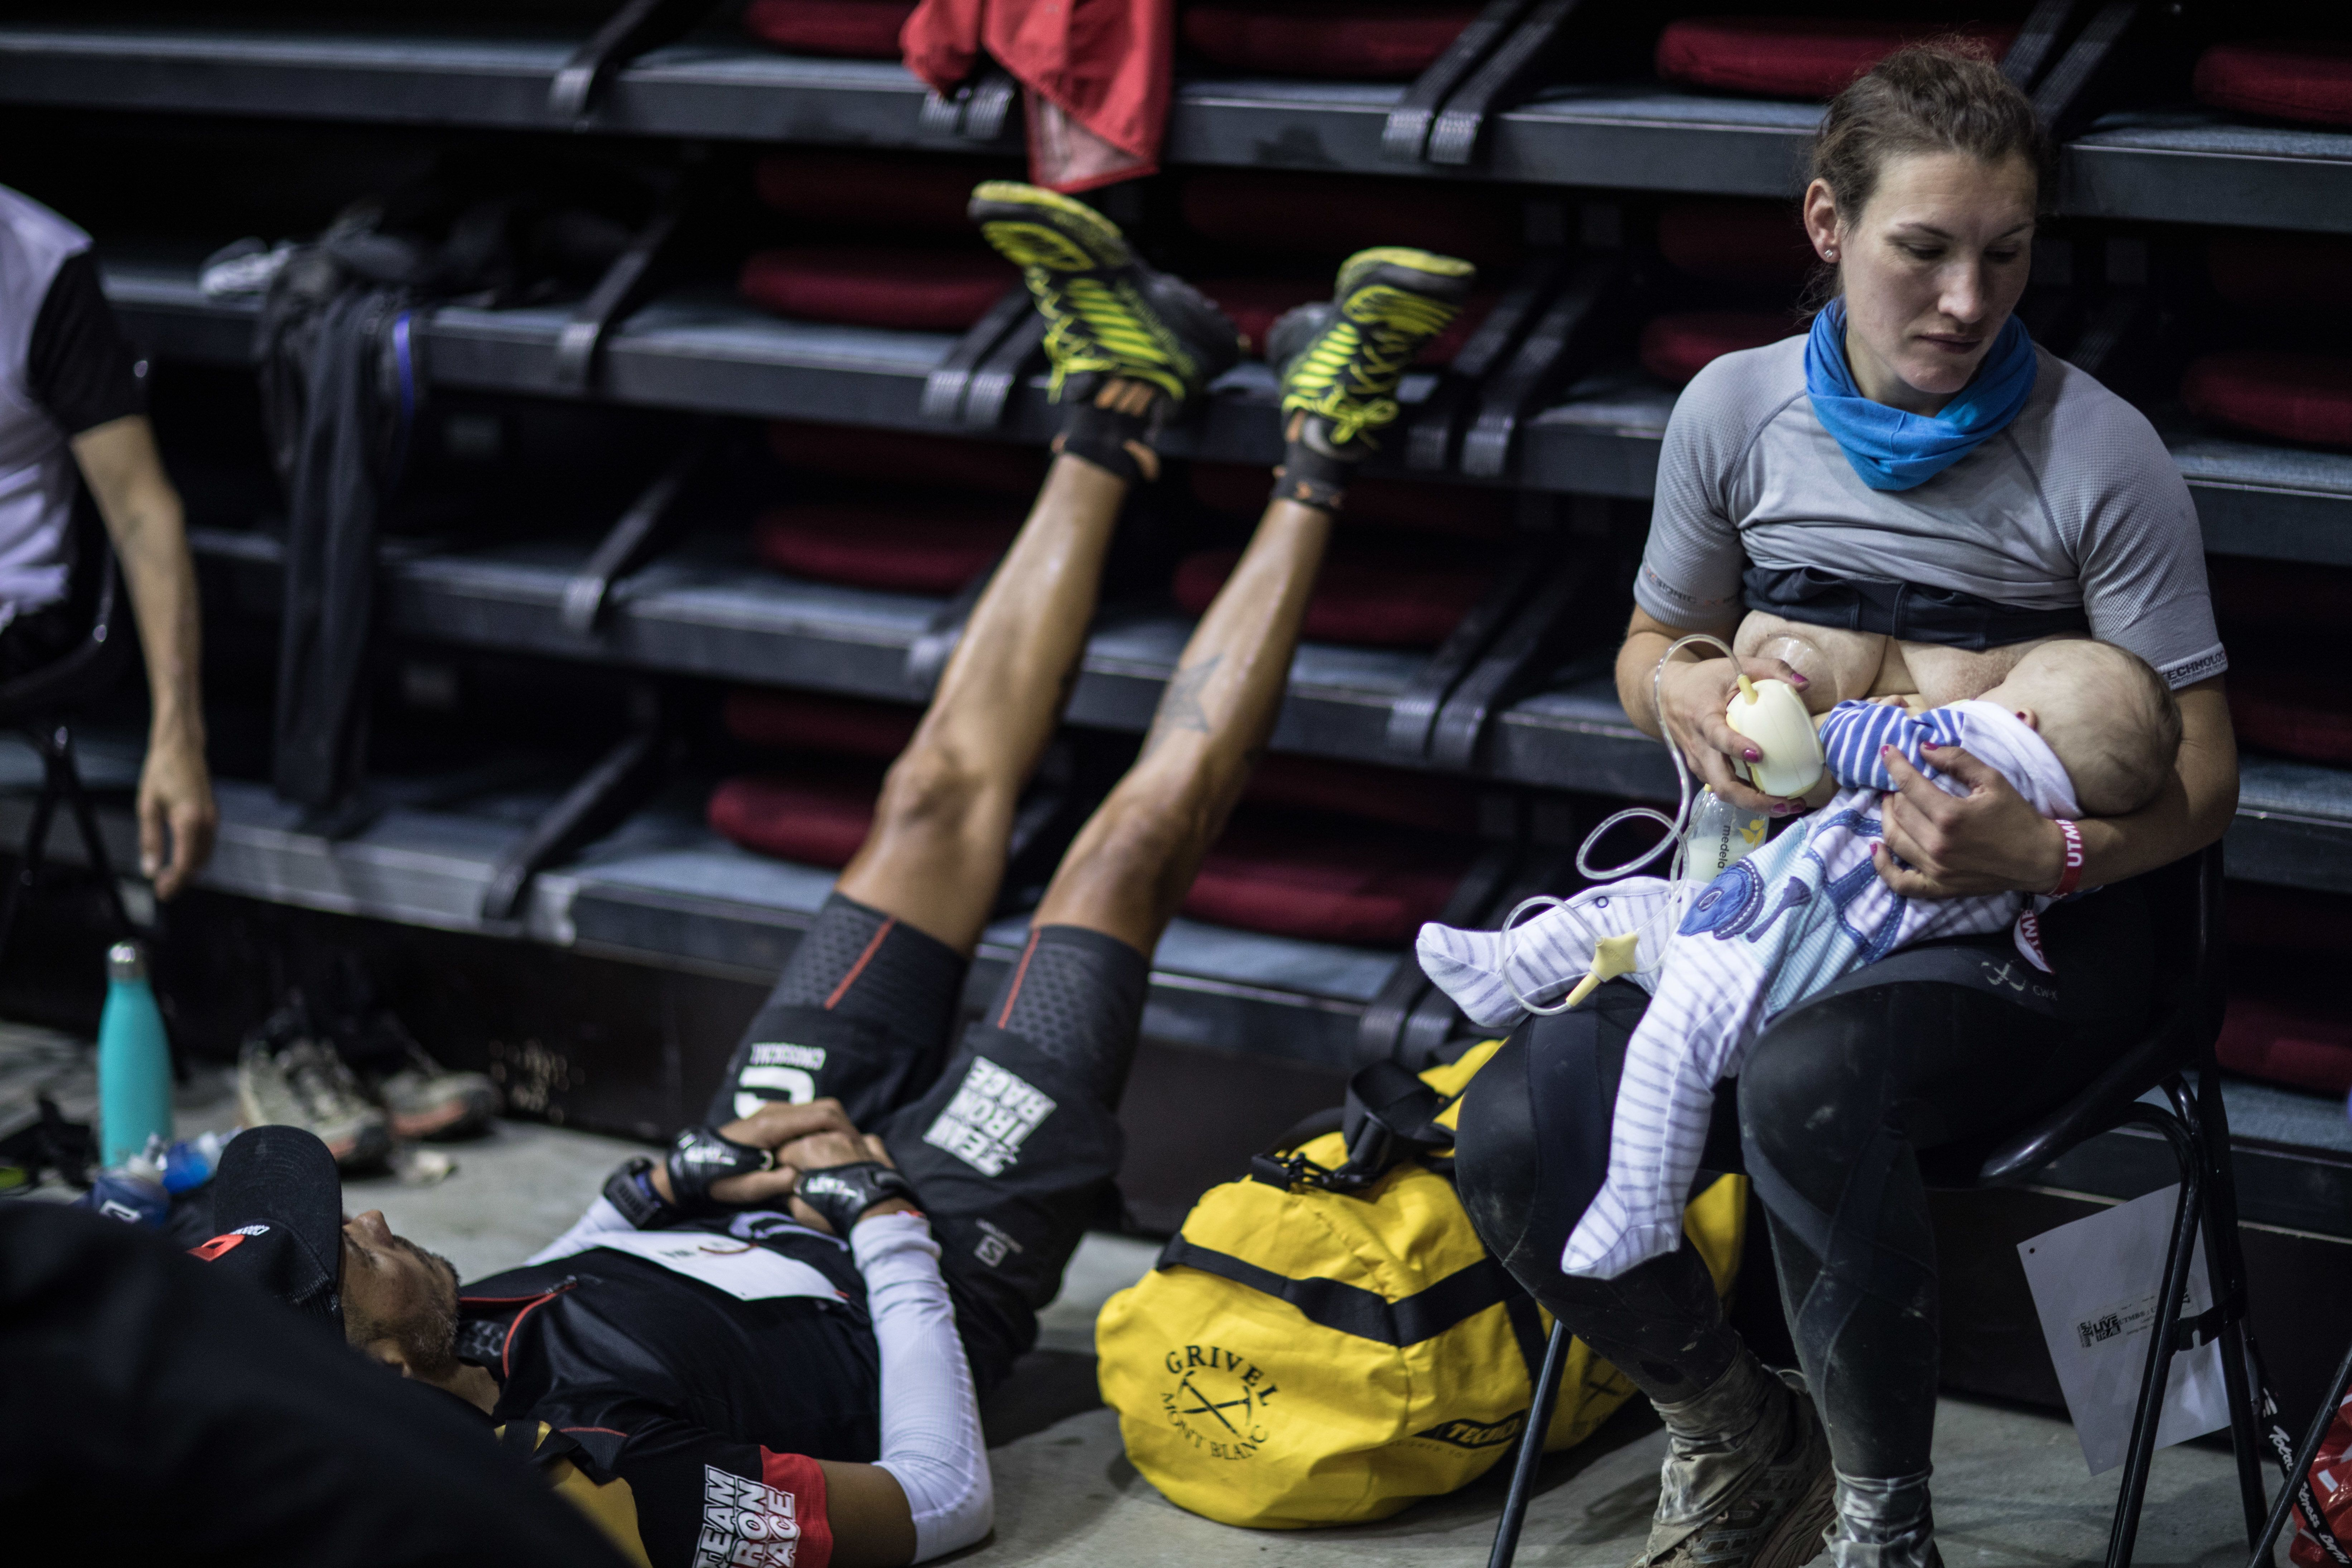 """A photographer for <a href=""""http://strava.com/"""" target=""""_blank"""" rel=""""noopener noreferrer"""">Strava</a>, a social network for athletes, captured a photo of Sophie Power nursing her son and pumping, which has since gone viral."""